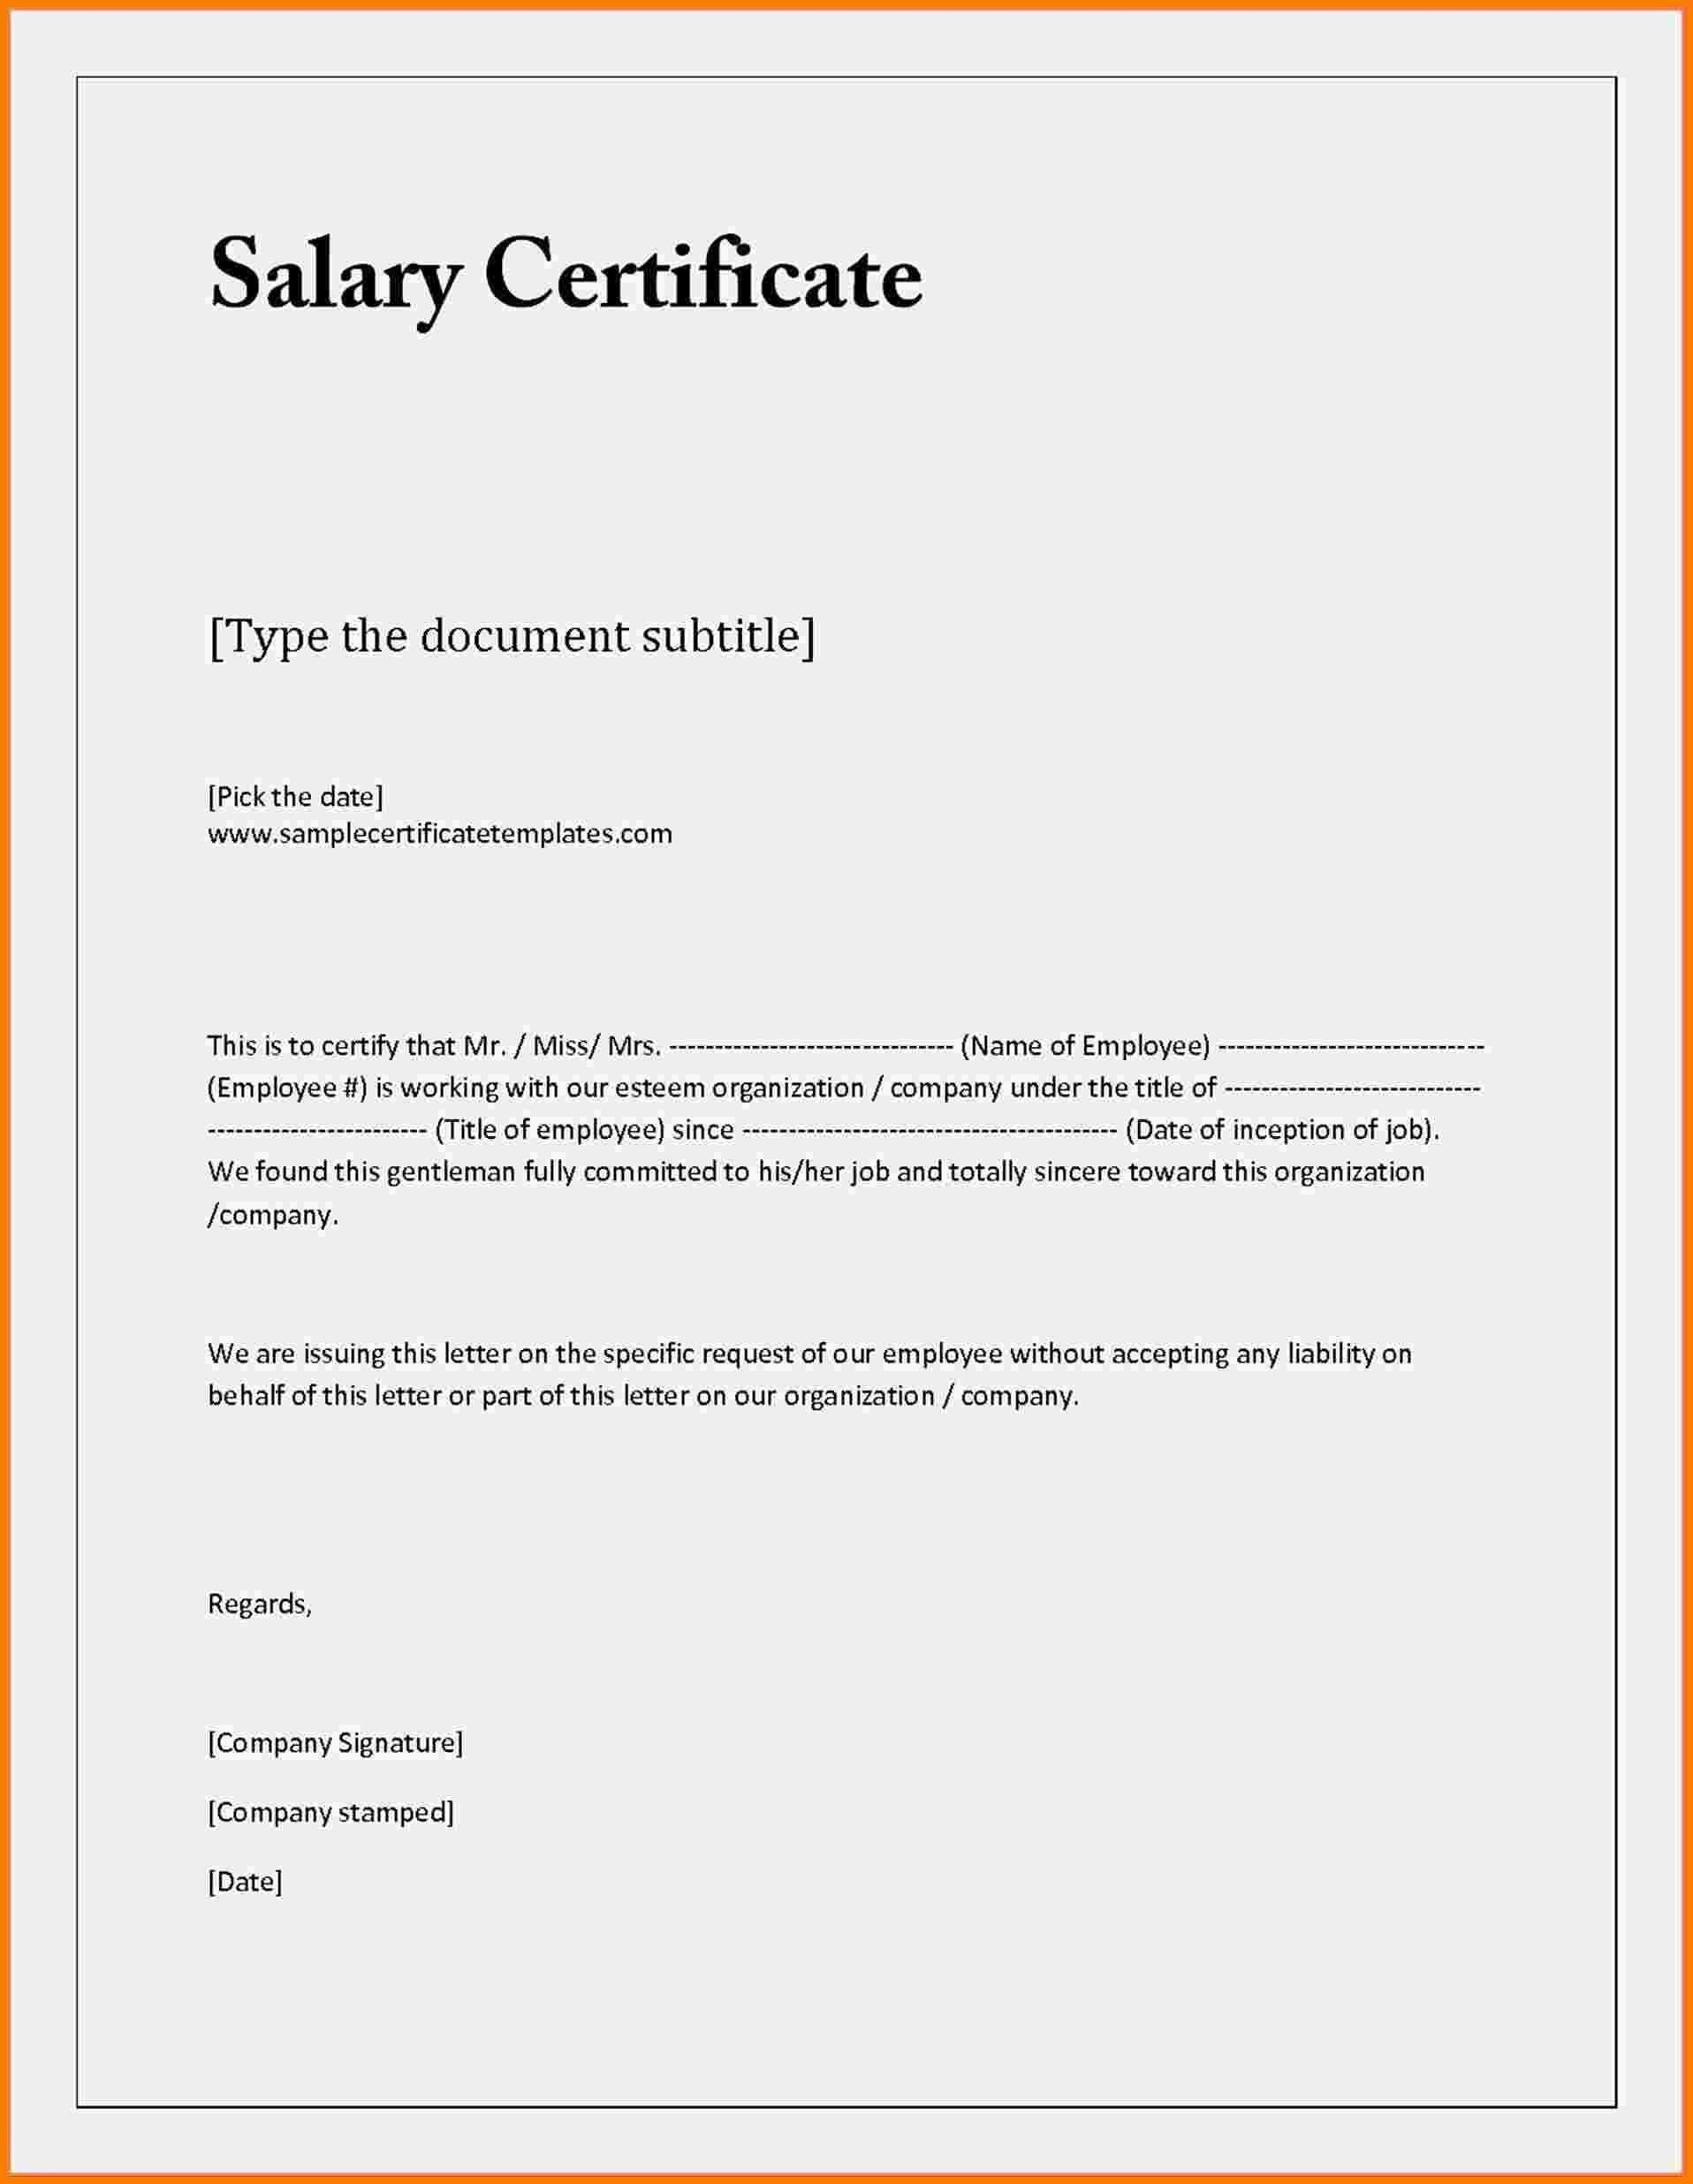 Proof Of Employment and Salary Letter Template Examples | Letter ...